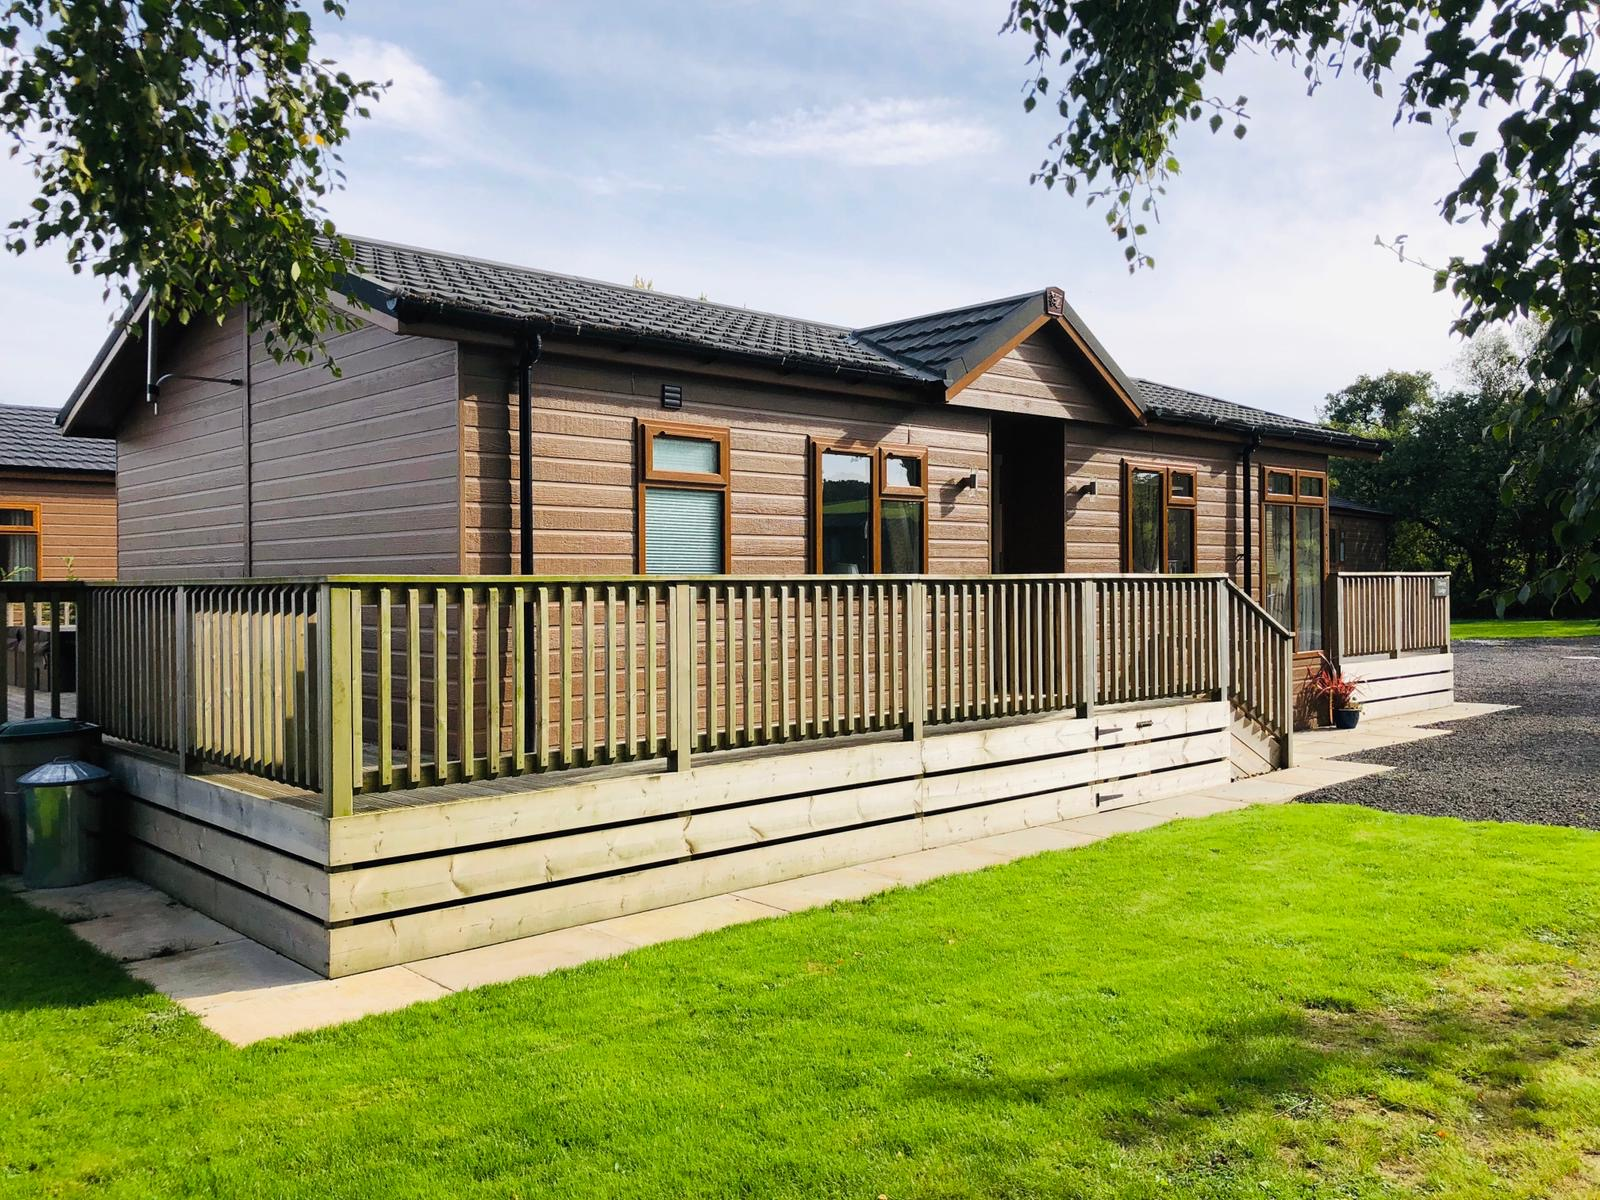 2 Bedroom Luxury Lodge with Hot tub for sale Devon